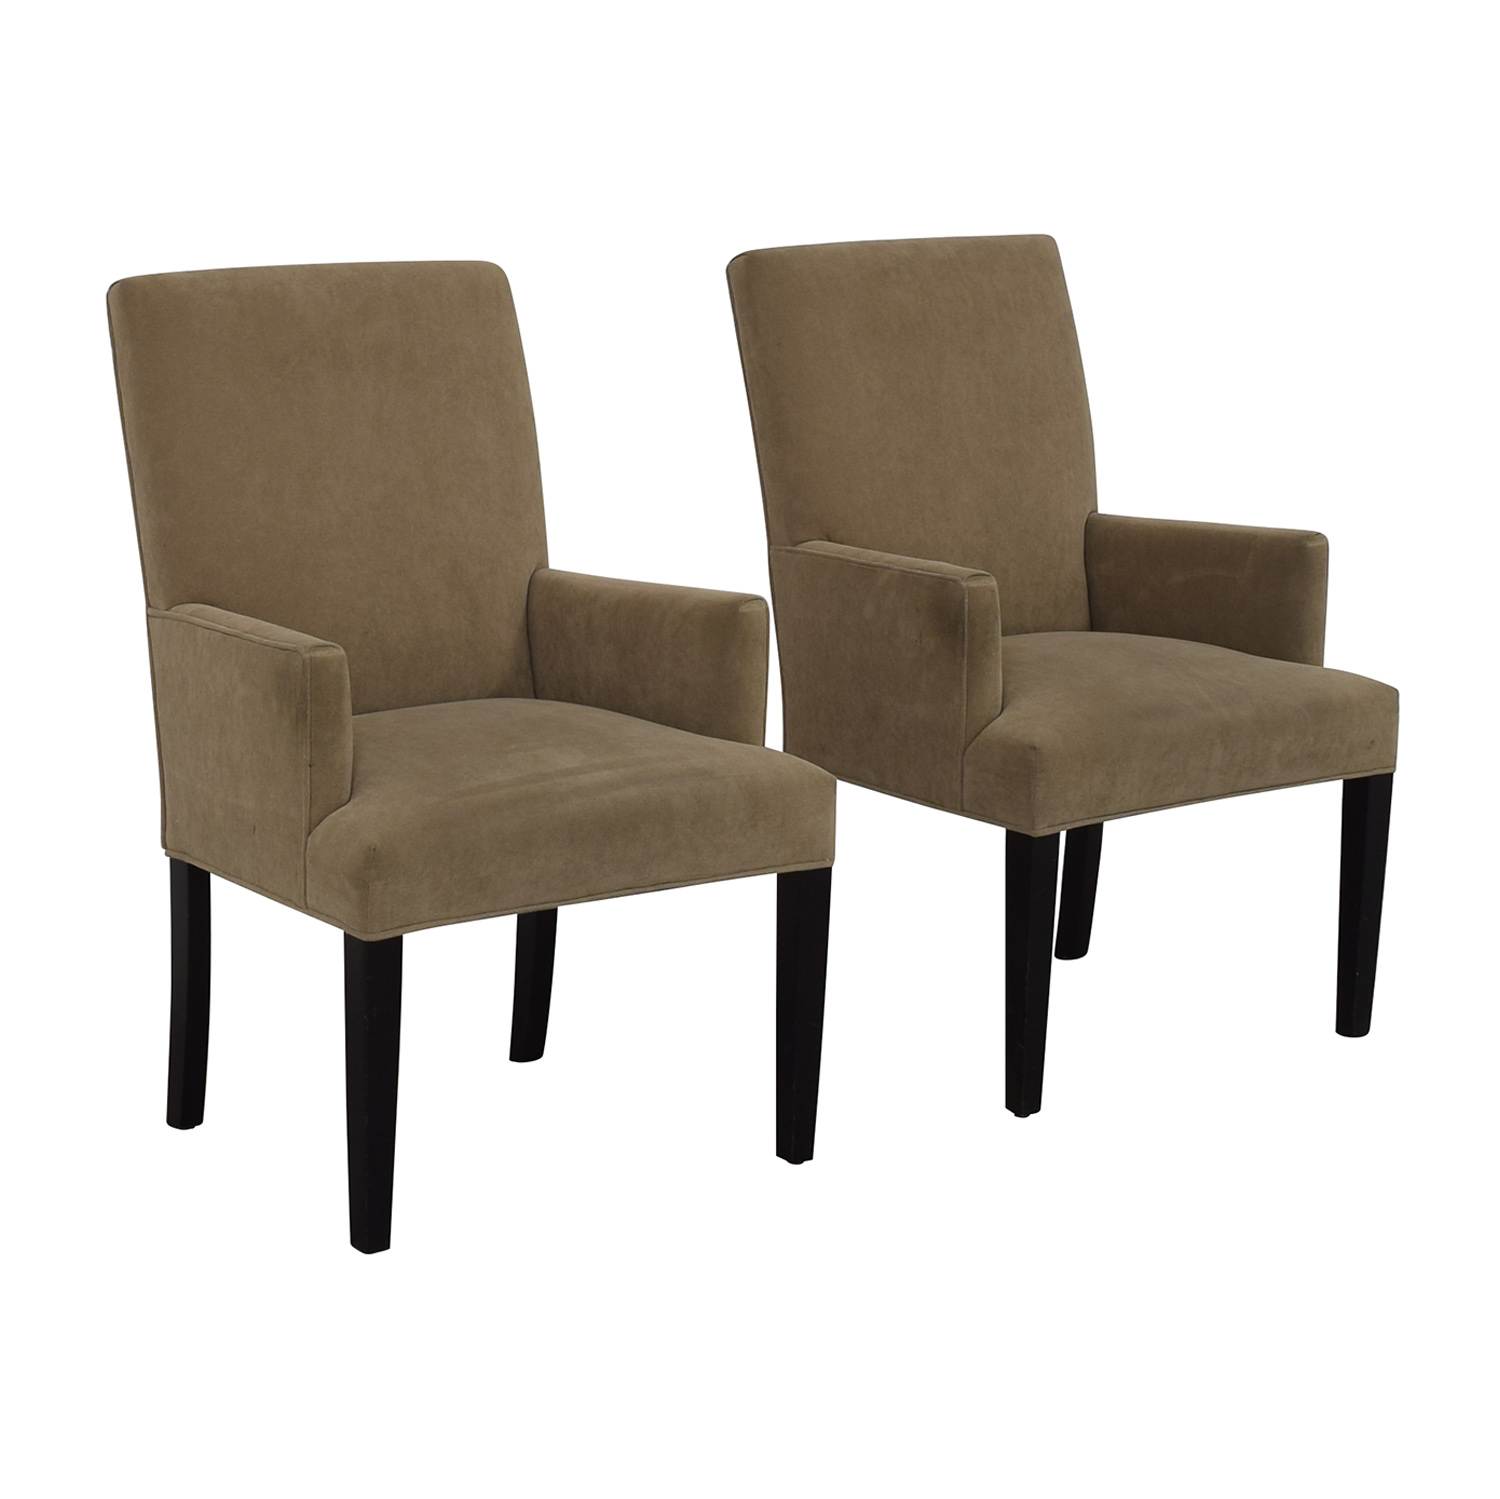 Crate & Barrel Crate & Barrel Dining Chairs nj